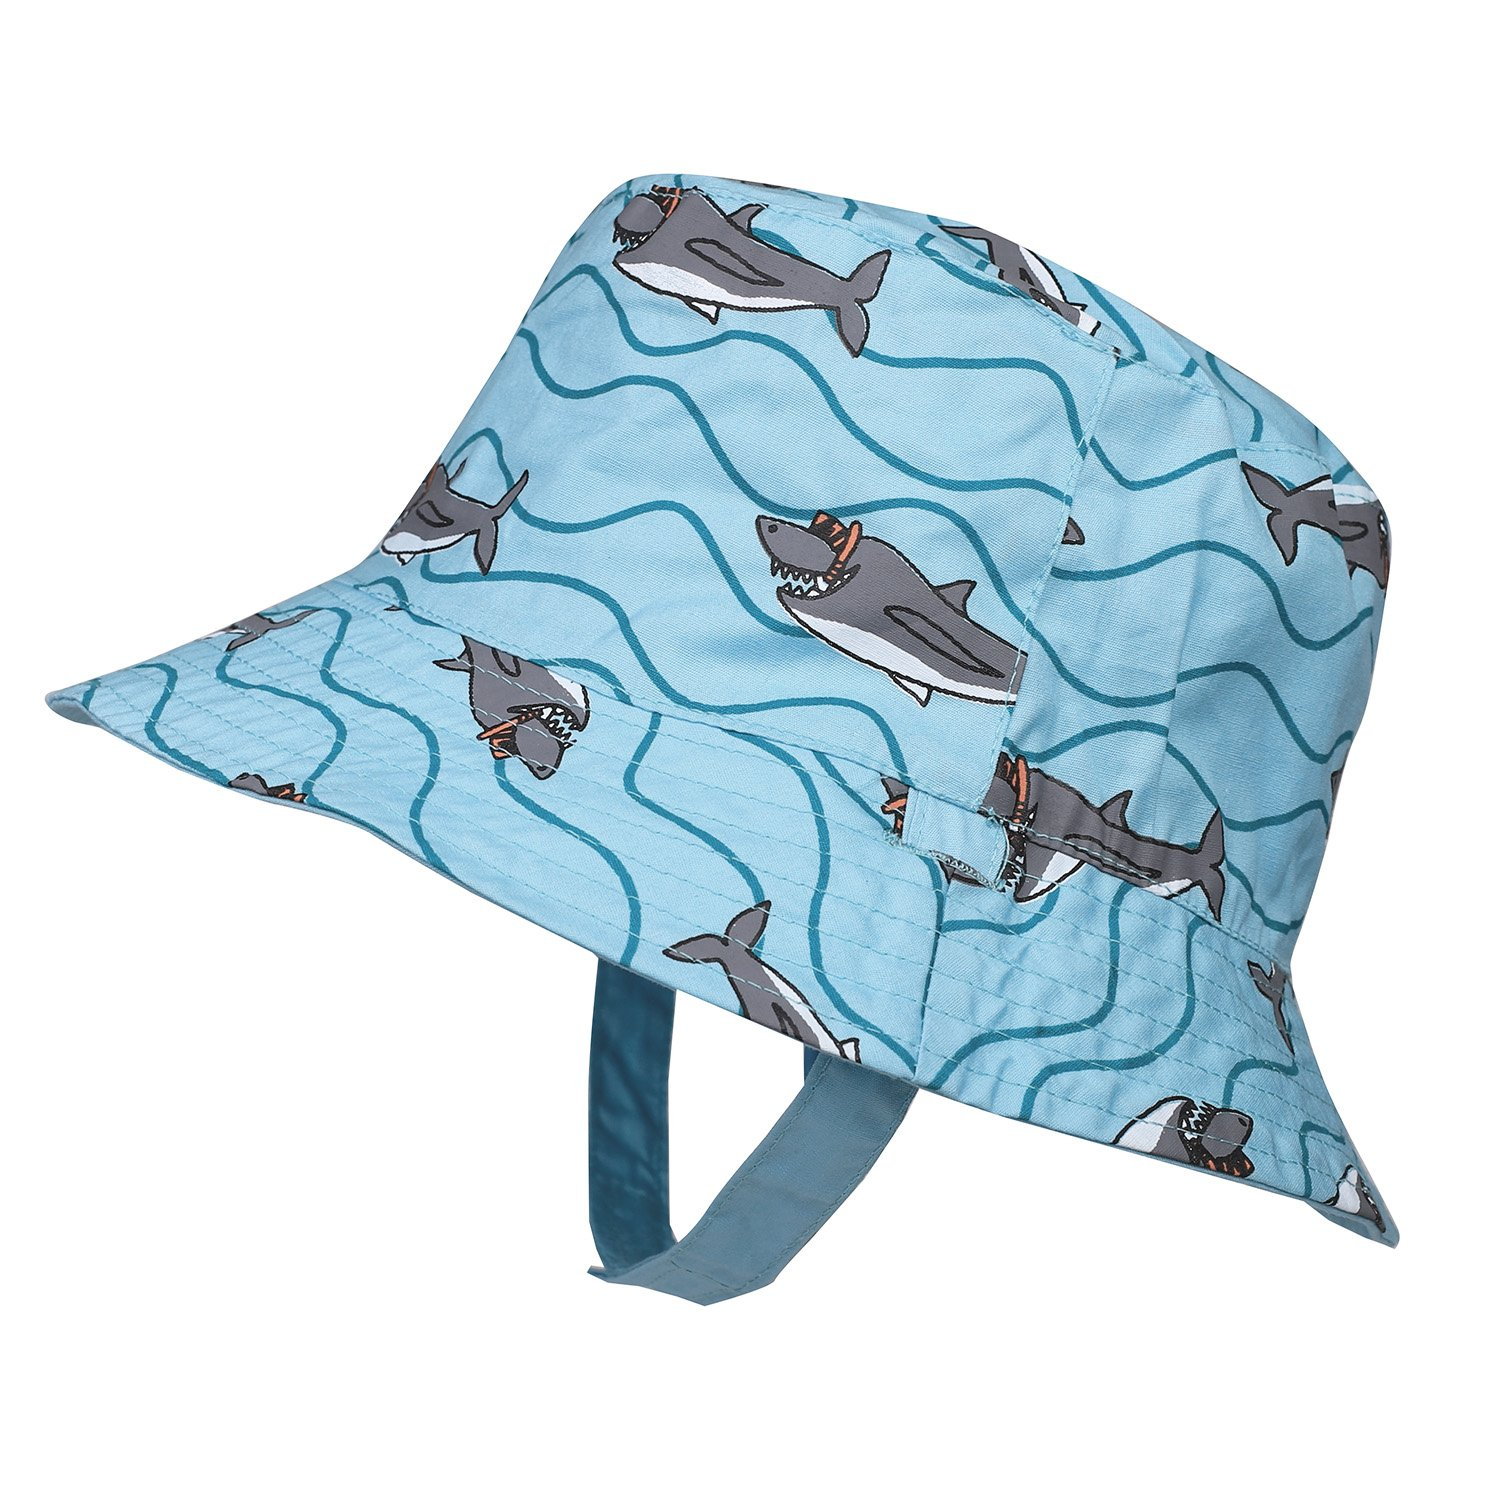 b7d2c572 Amazon.com: Baby/Toddler/Kids Sun Hat Reversible UV Protection Cotton Bucket  Hat with Chin Strap Fish Prints: Clothing